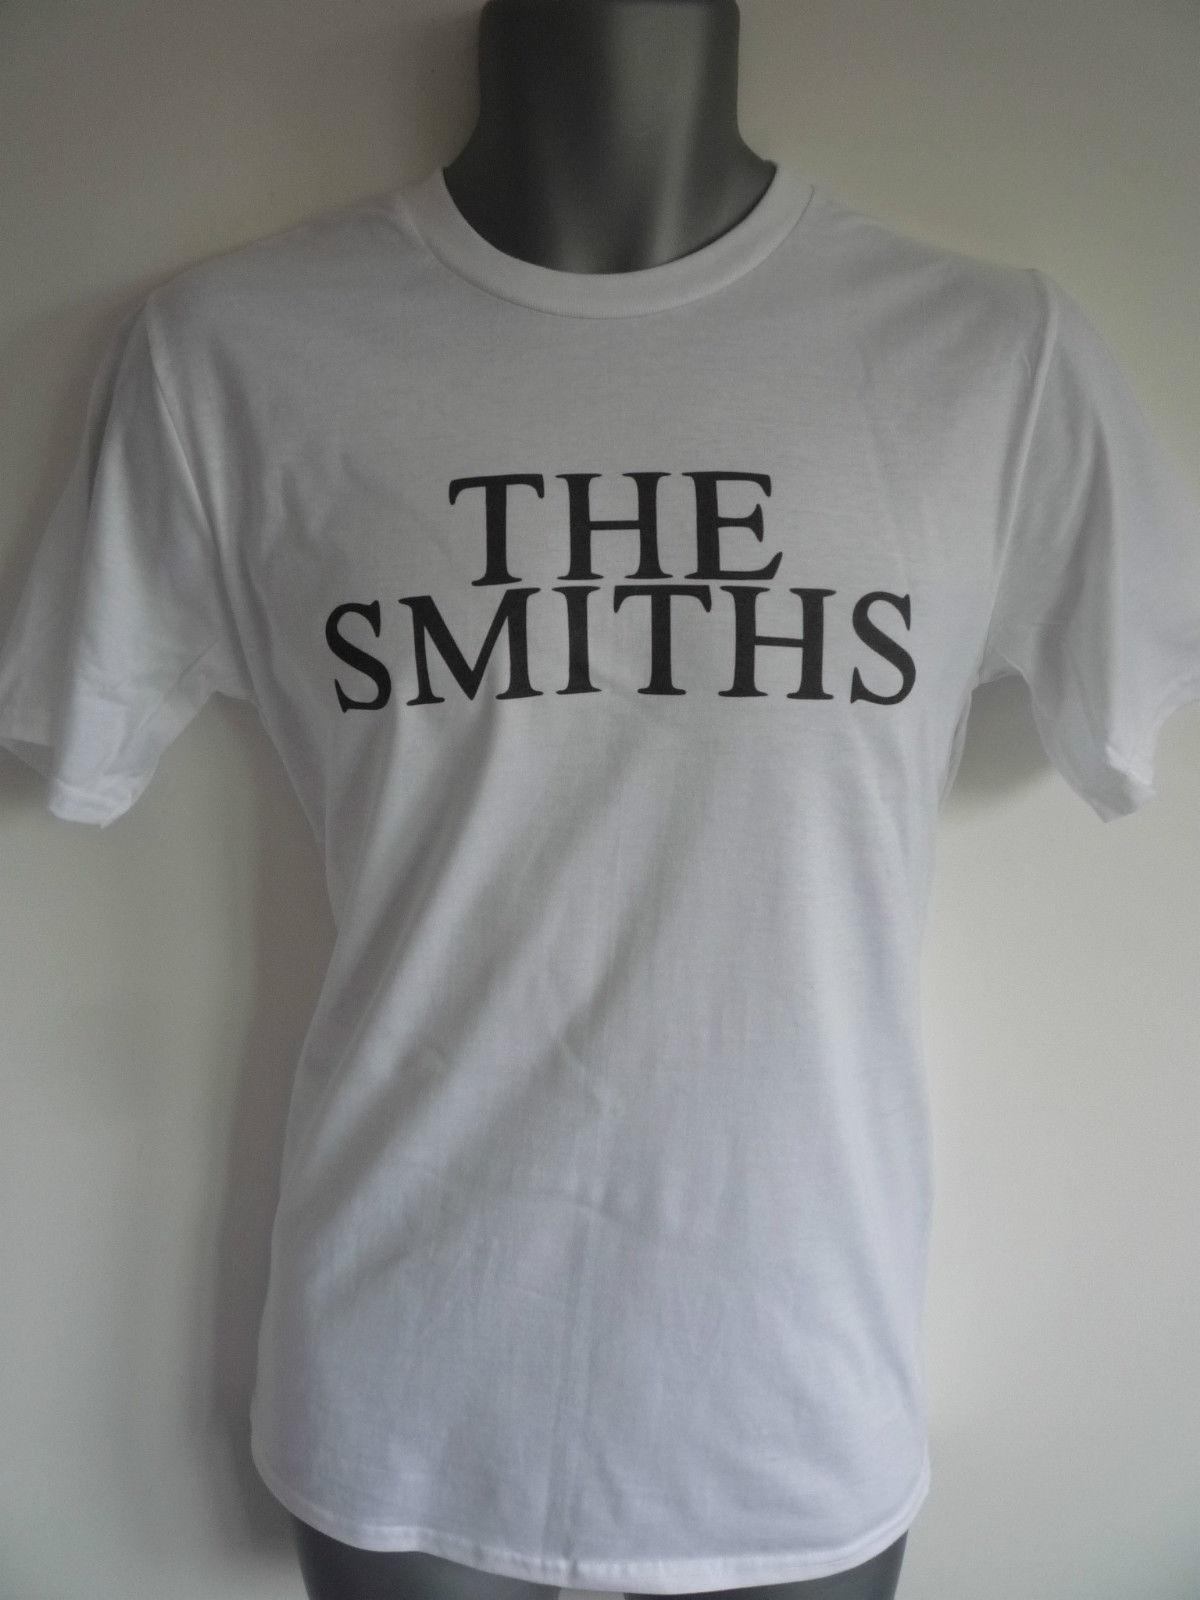 c98cd12f5e9e THE SMITHS DESIGN MENS KIDS T SHIRT QUEEN IS DEAD CHARMING MAN MORRISSEY  INDIE Men Women Unisex Fashion Tshirt T Shirt On Buy Cool Shirts From ...